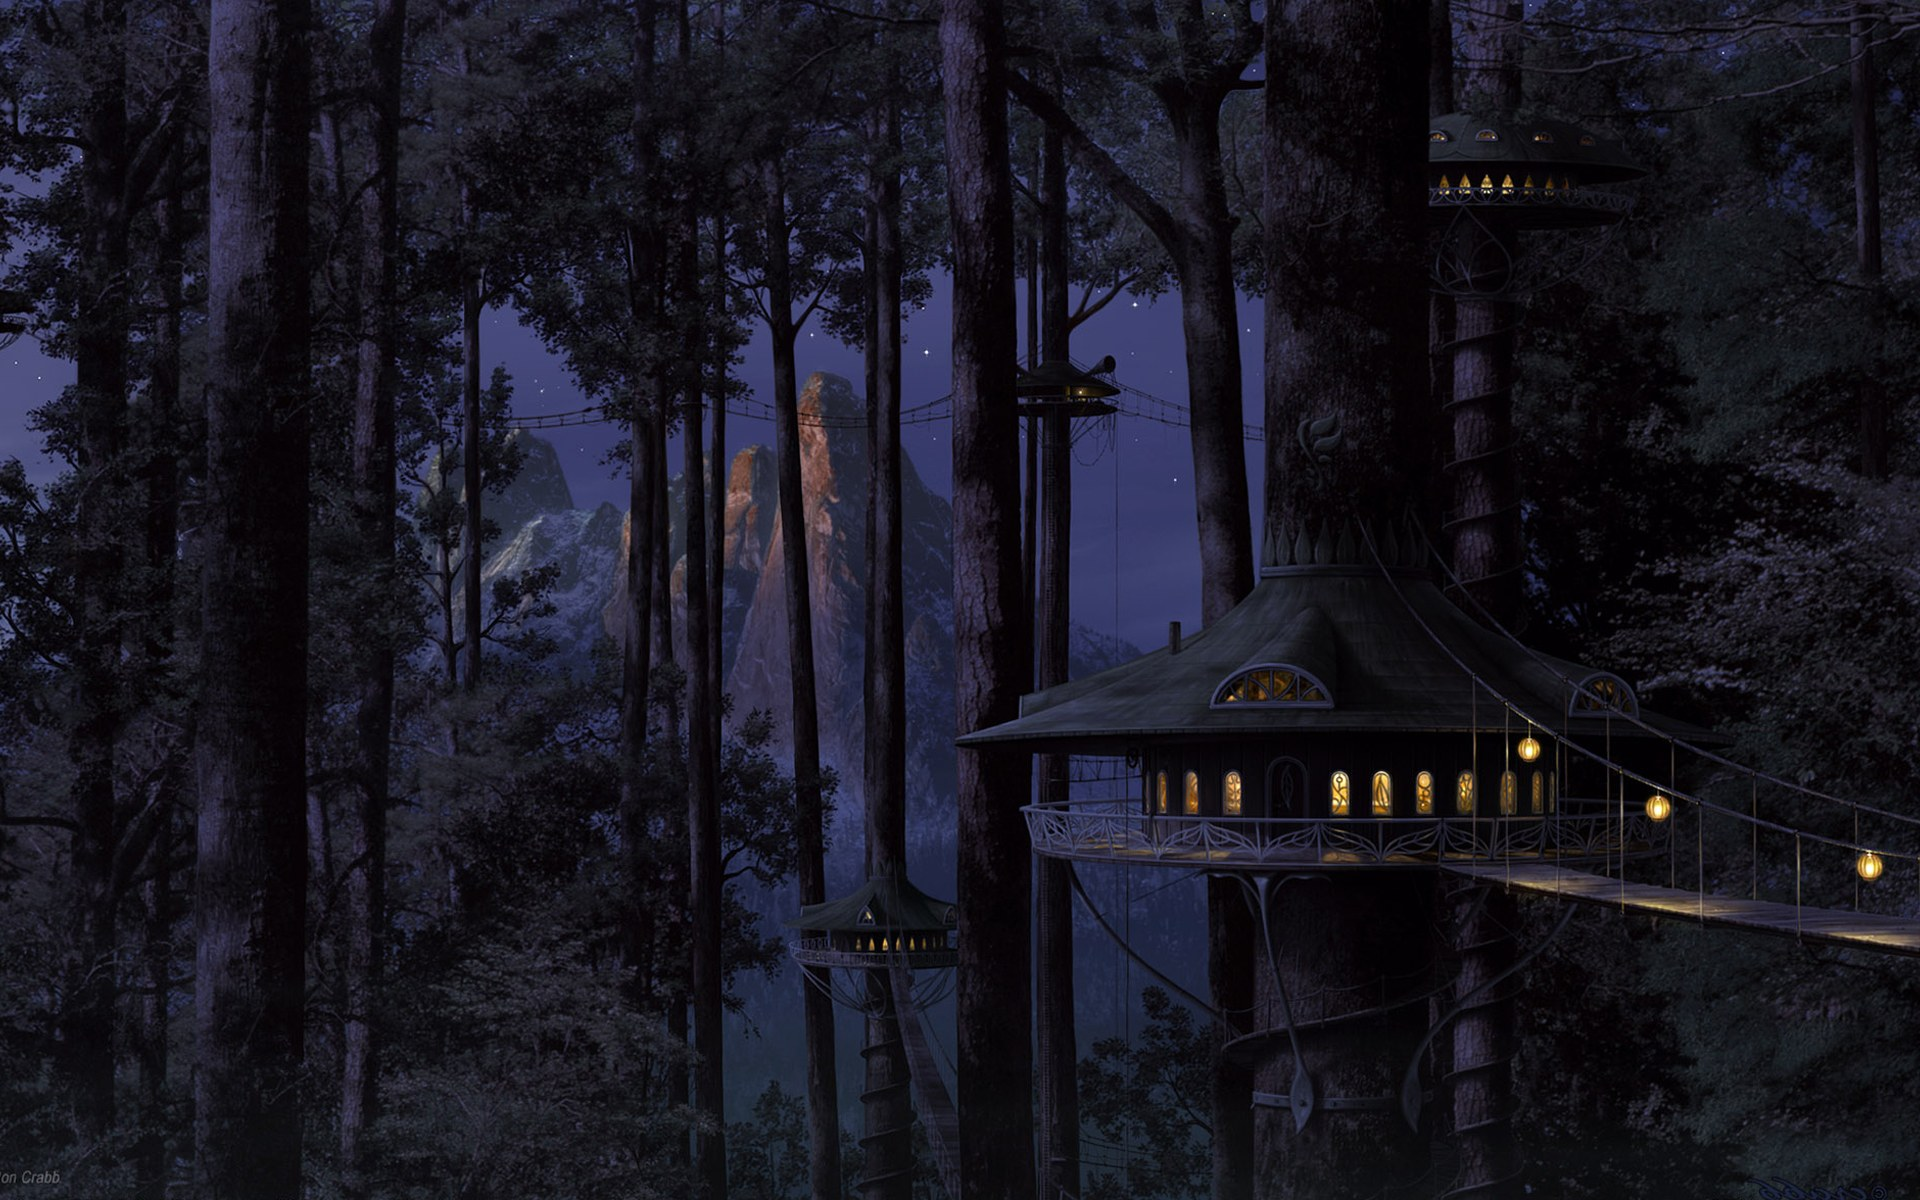 ... , wallpaper, landscape, photo, forest, anime, wallpapers, artifacts